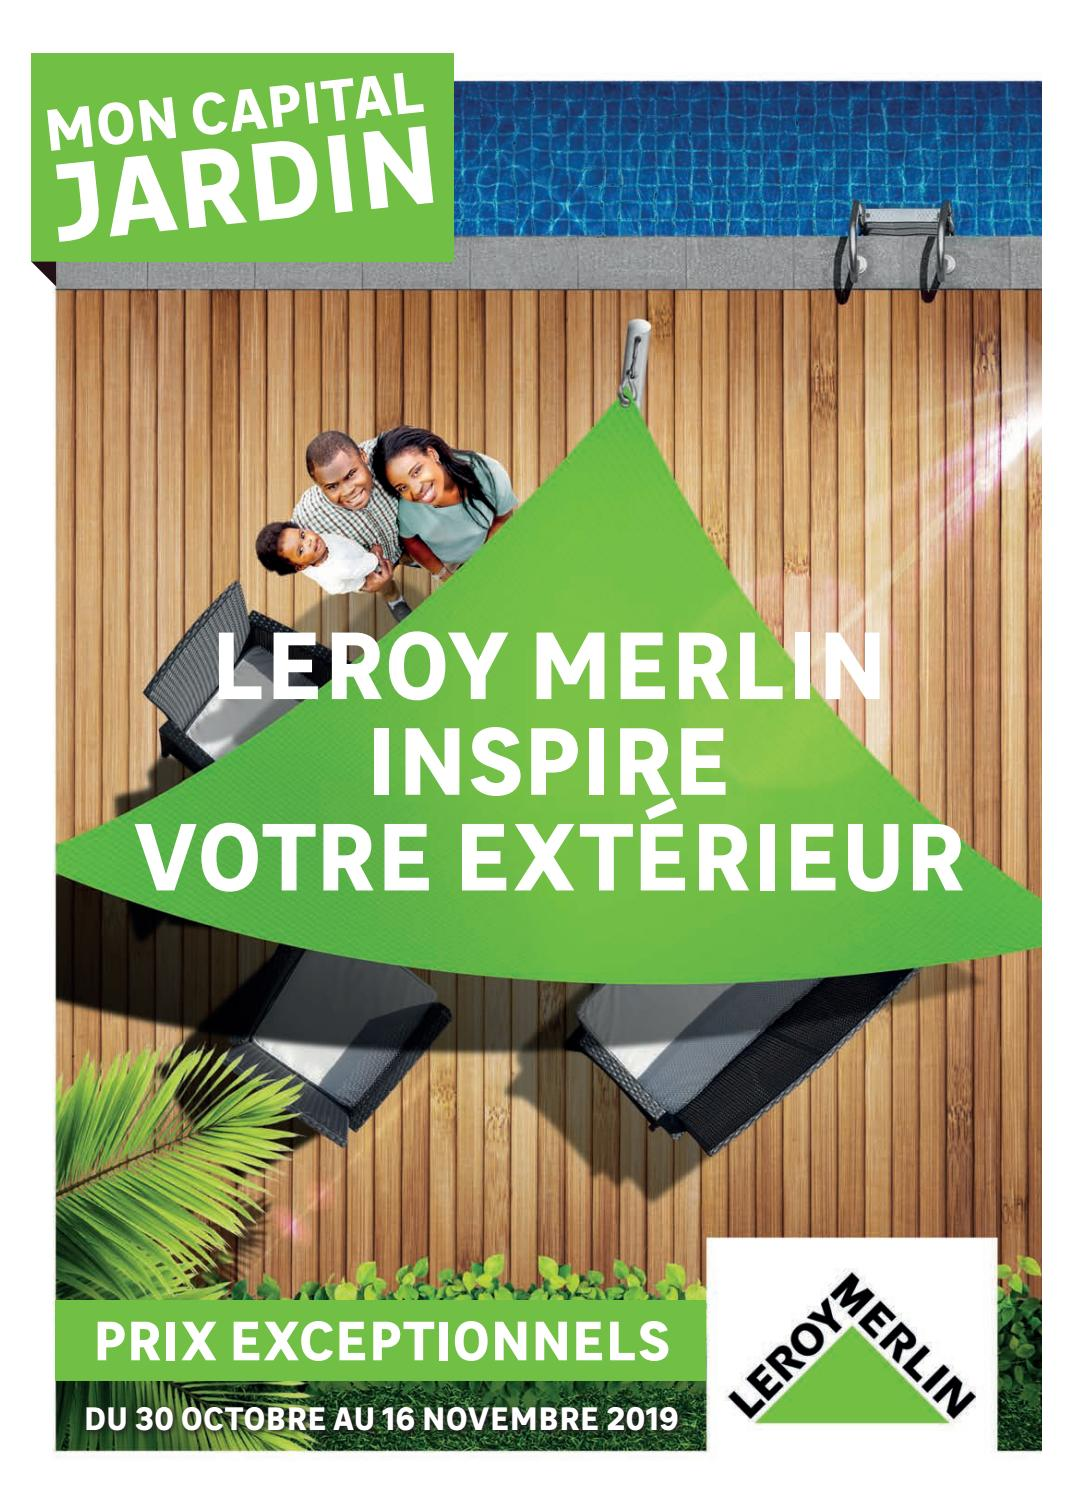 Leroy Merlin Inspire Votre ExtÉrieur By Agencecourtcircuit Issuu